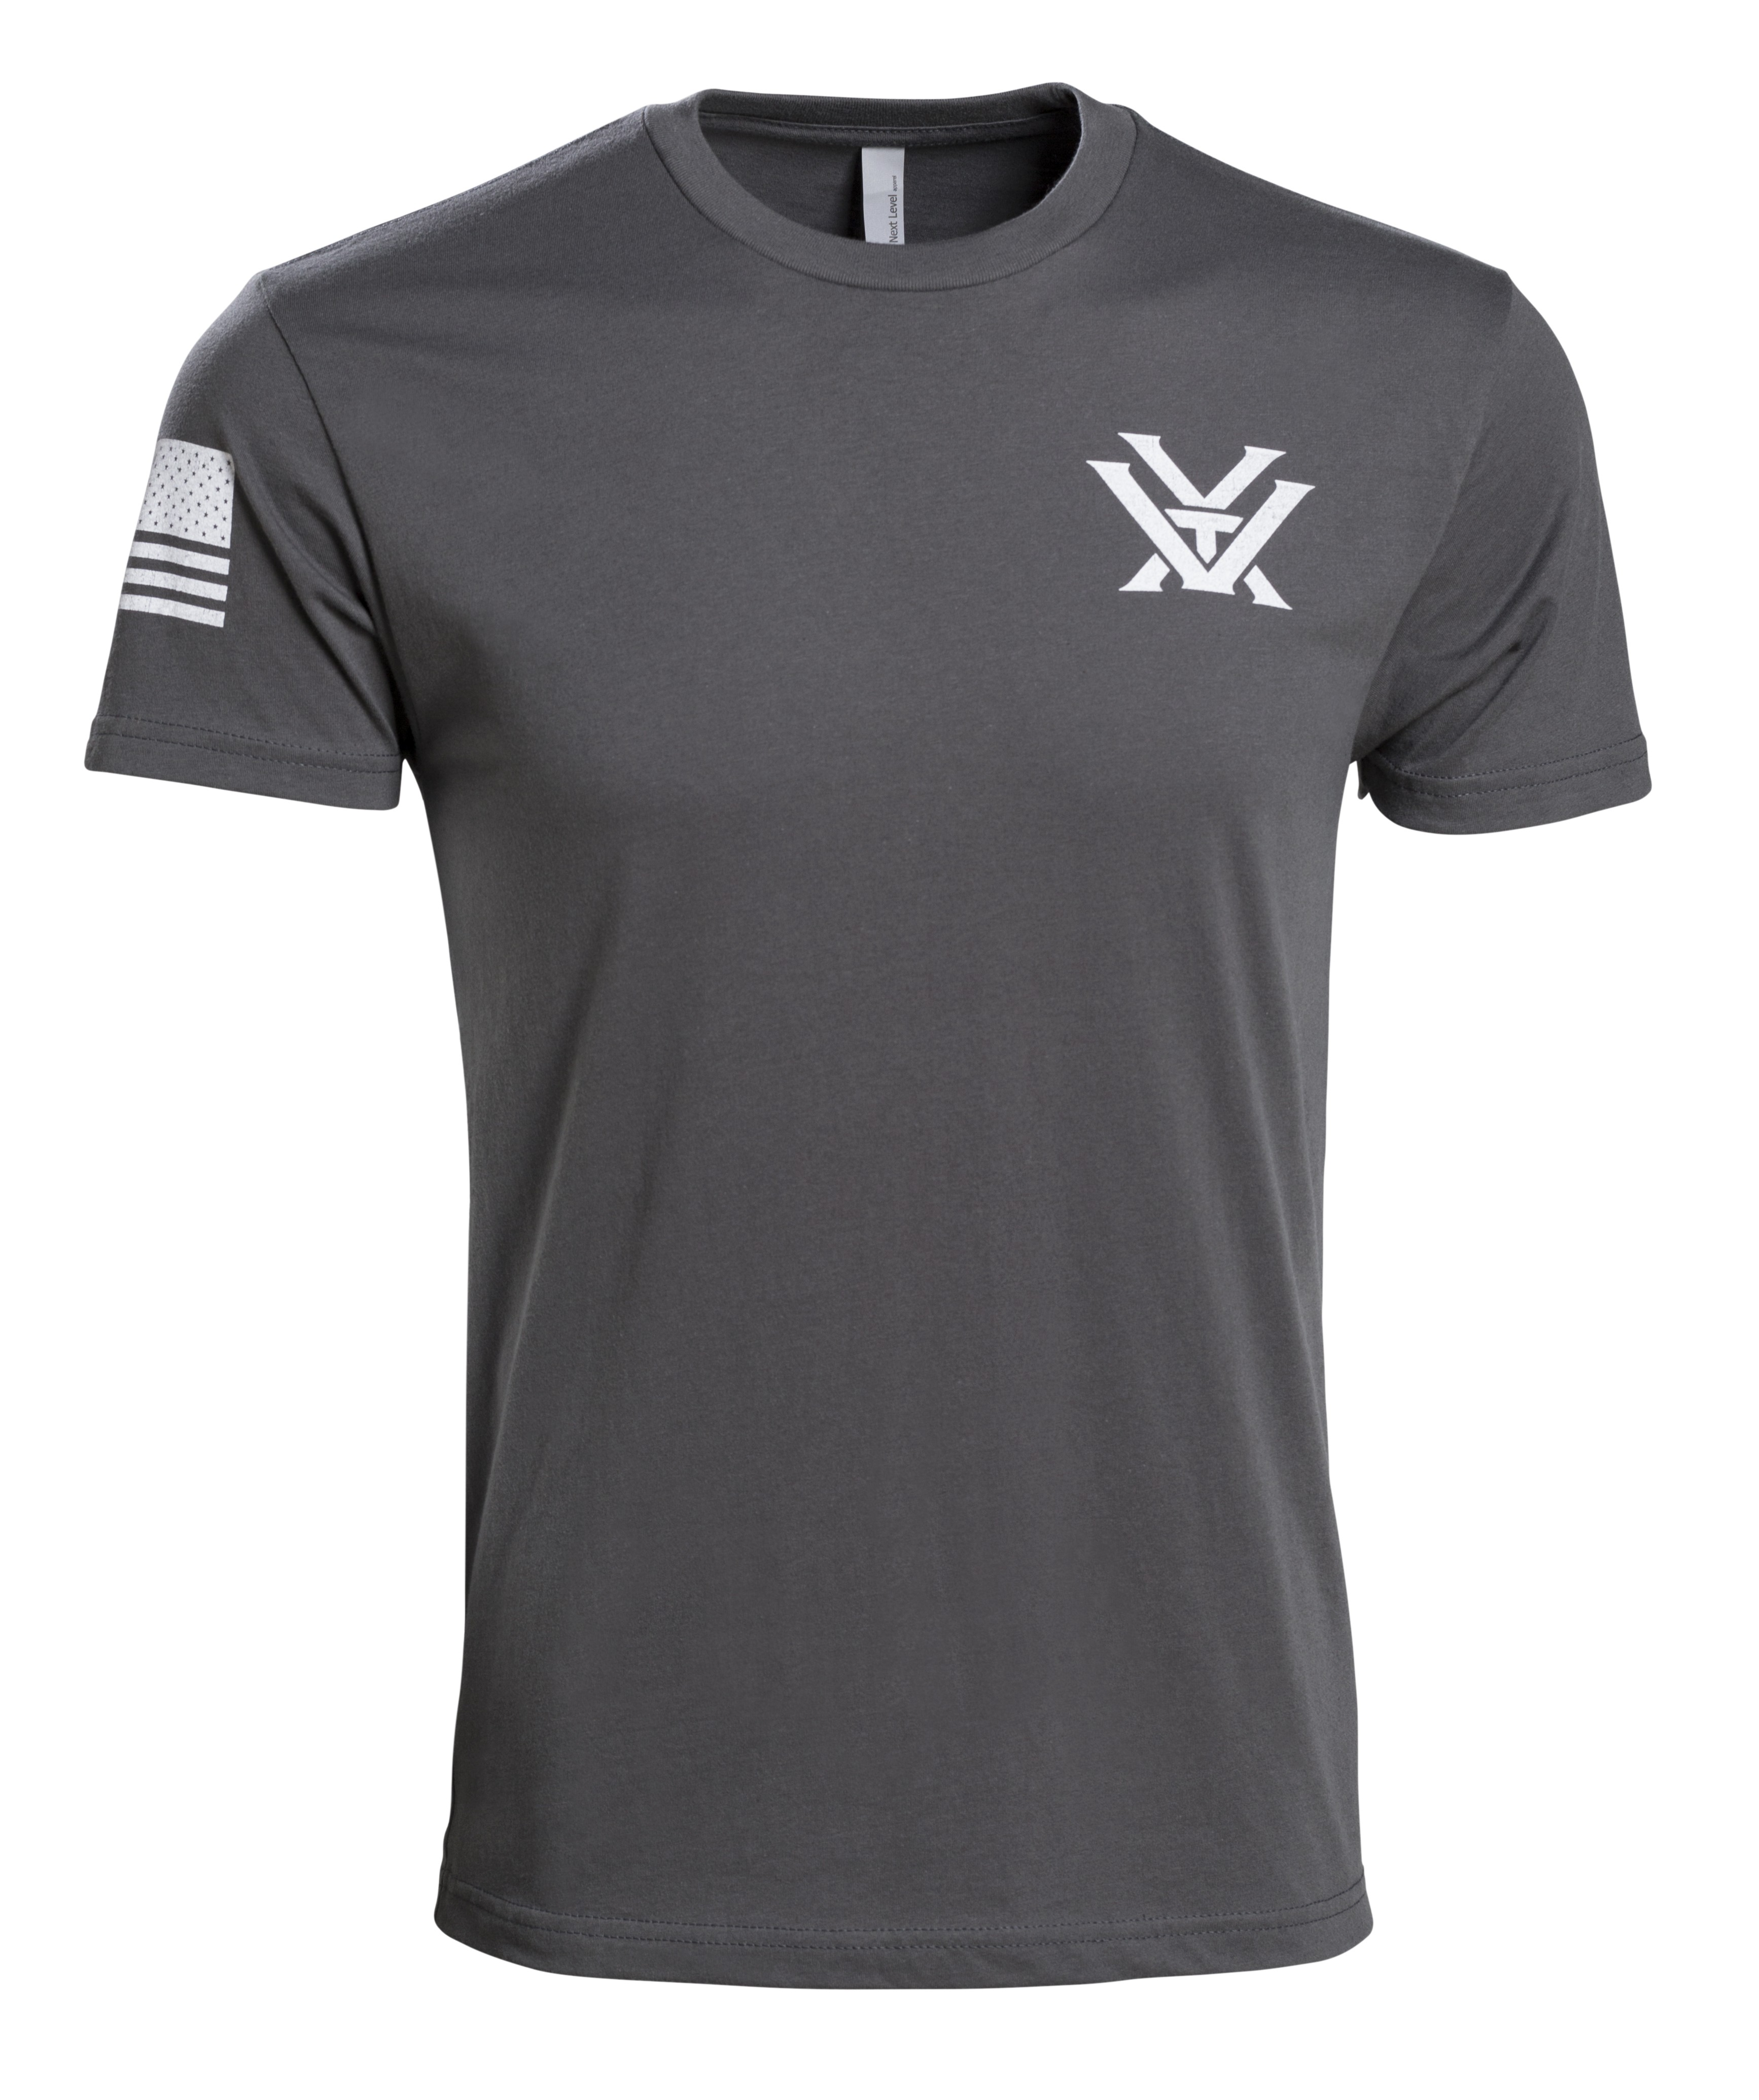 Vortex Optics Grey Patriot T-Shirt